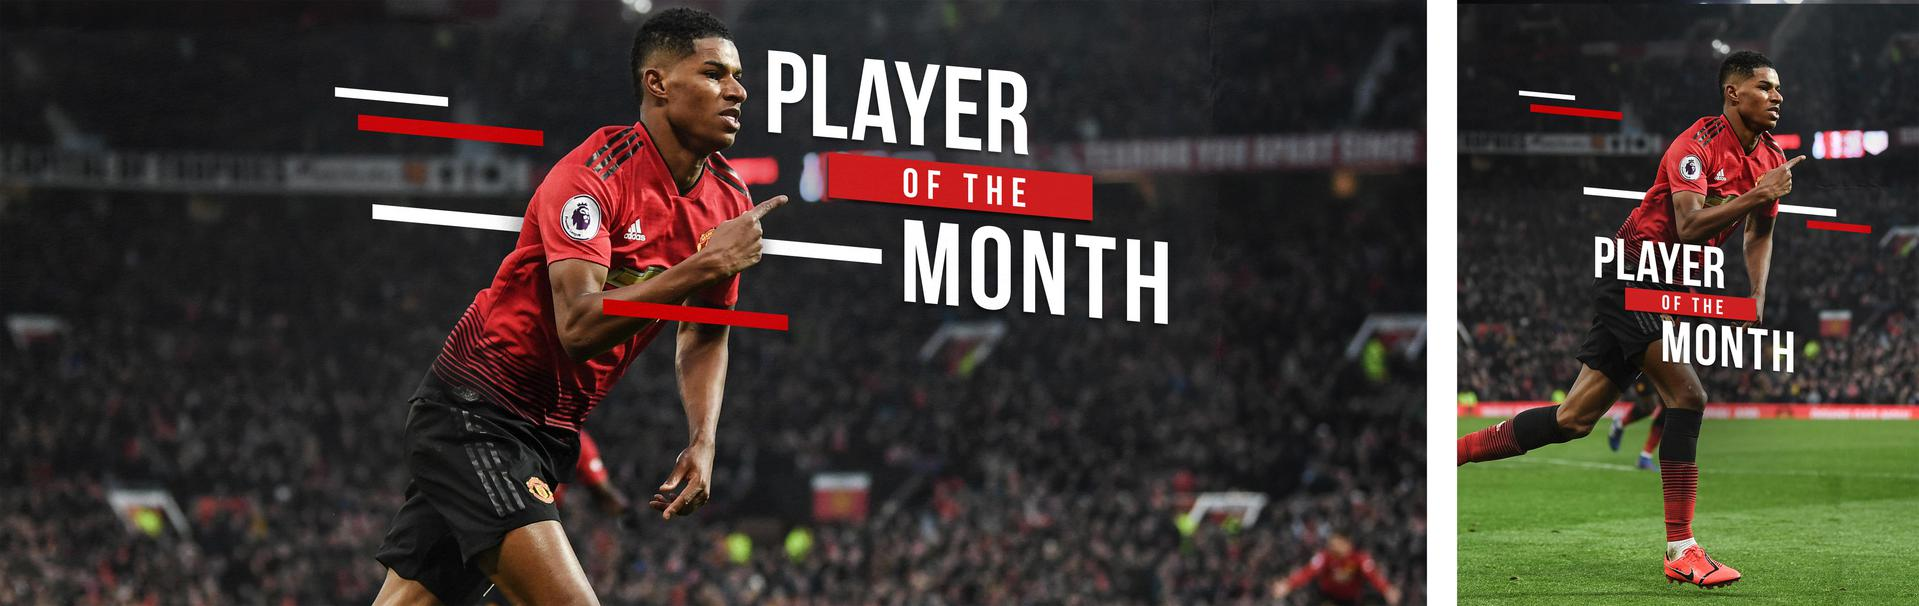 Marcus Rashford Player of the Month.